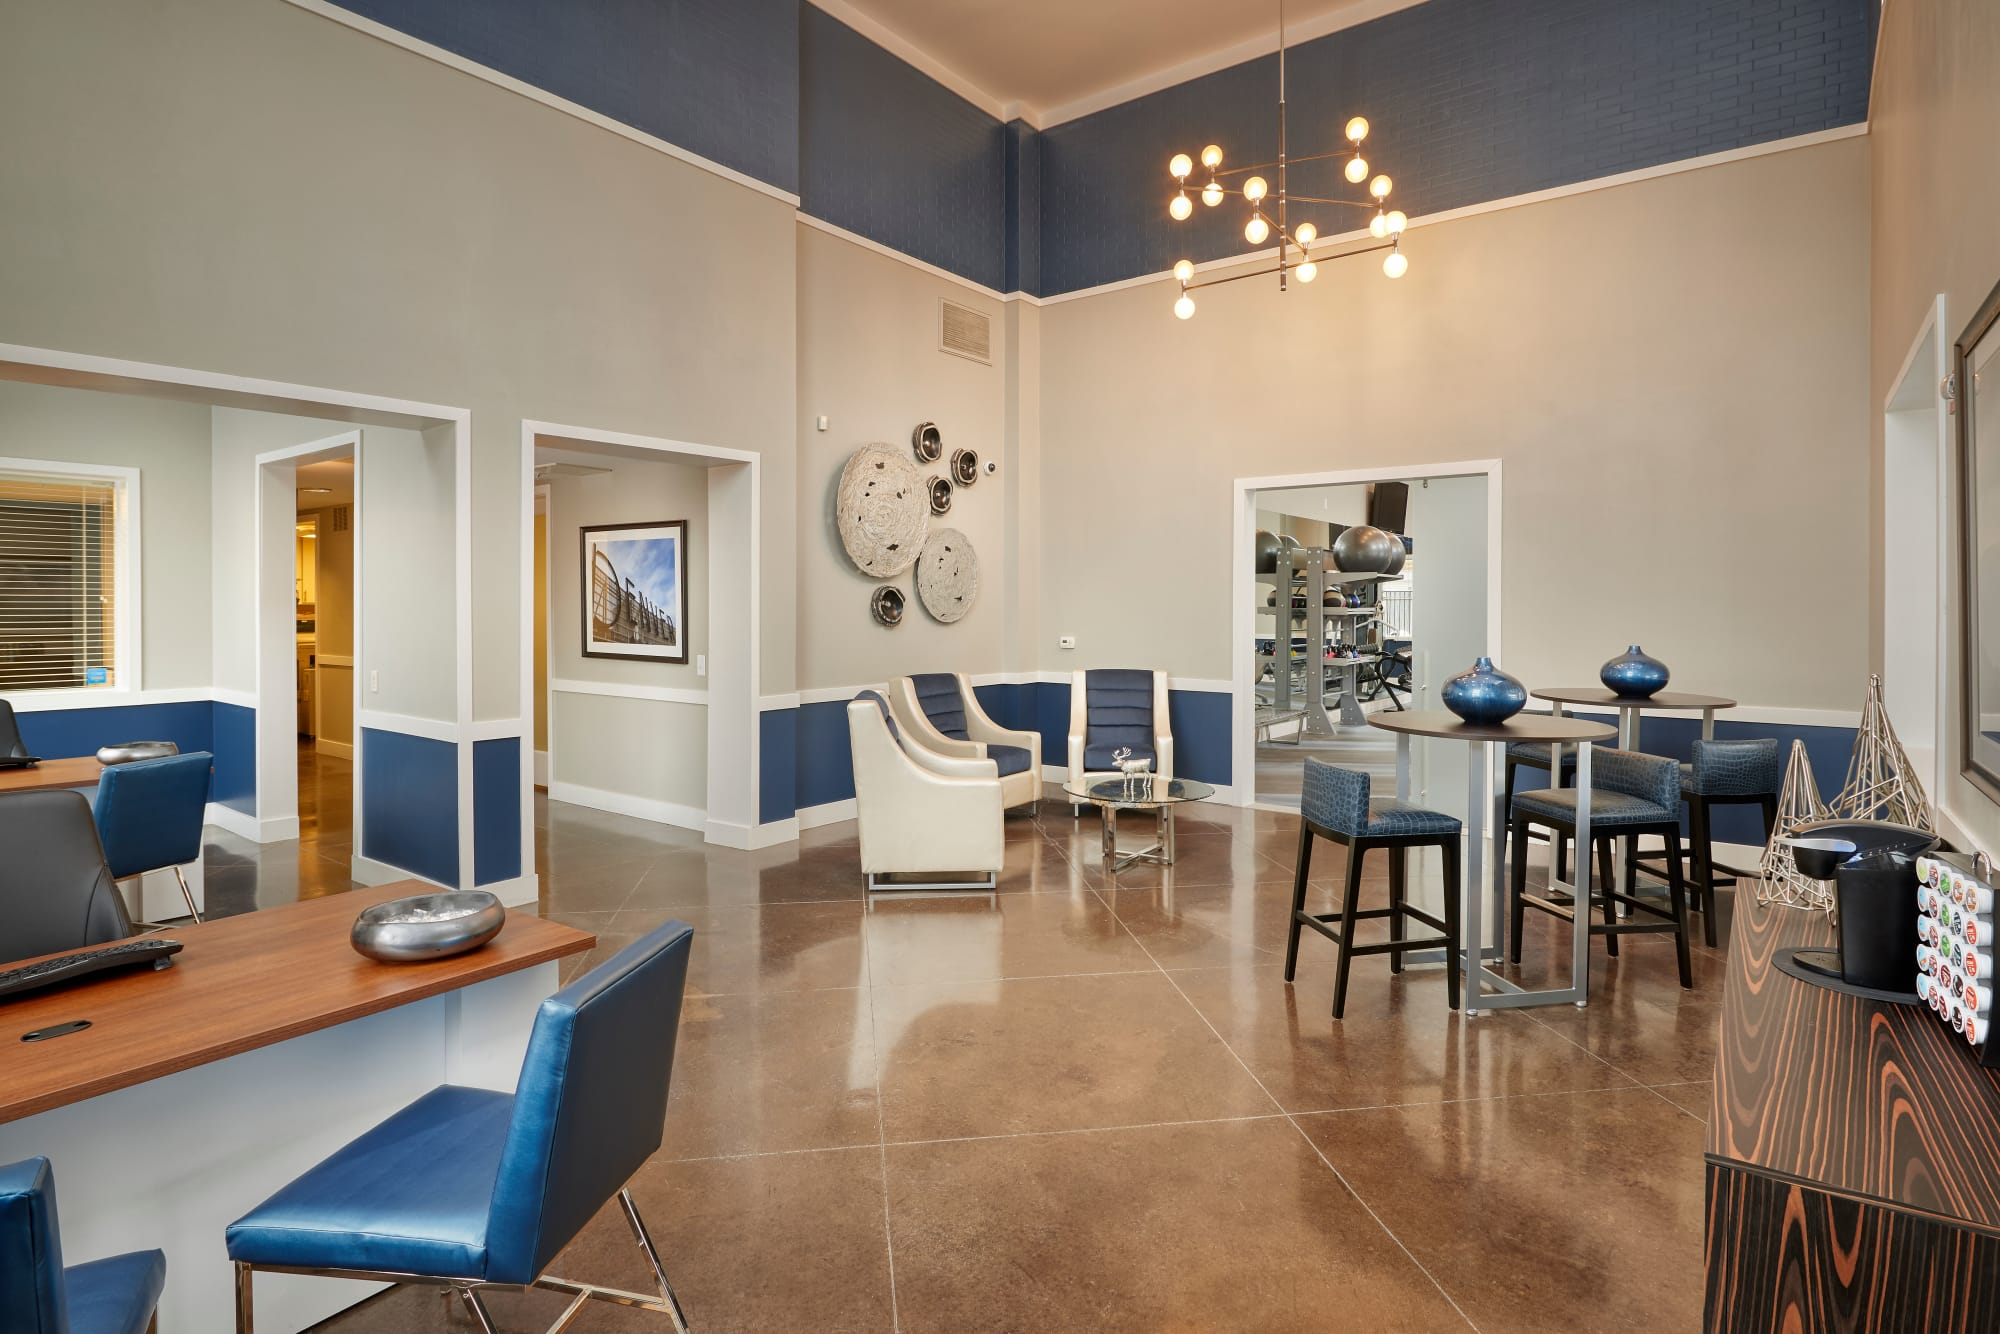 Renovated leasing office lounge at The Rail at Inverness in Englewood, Colorado